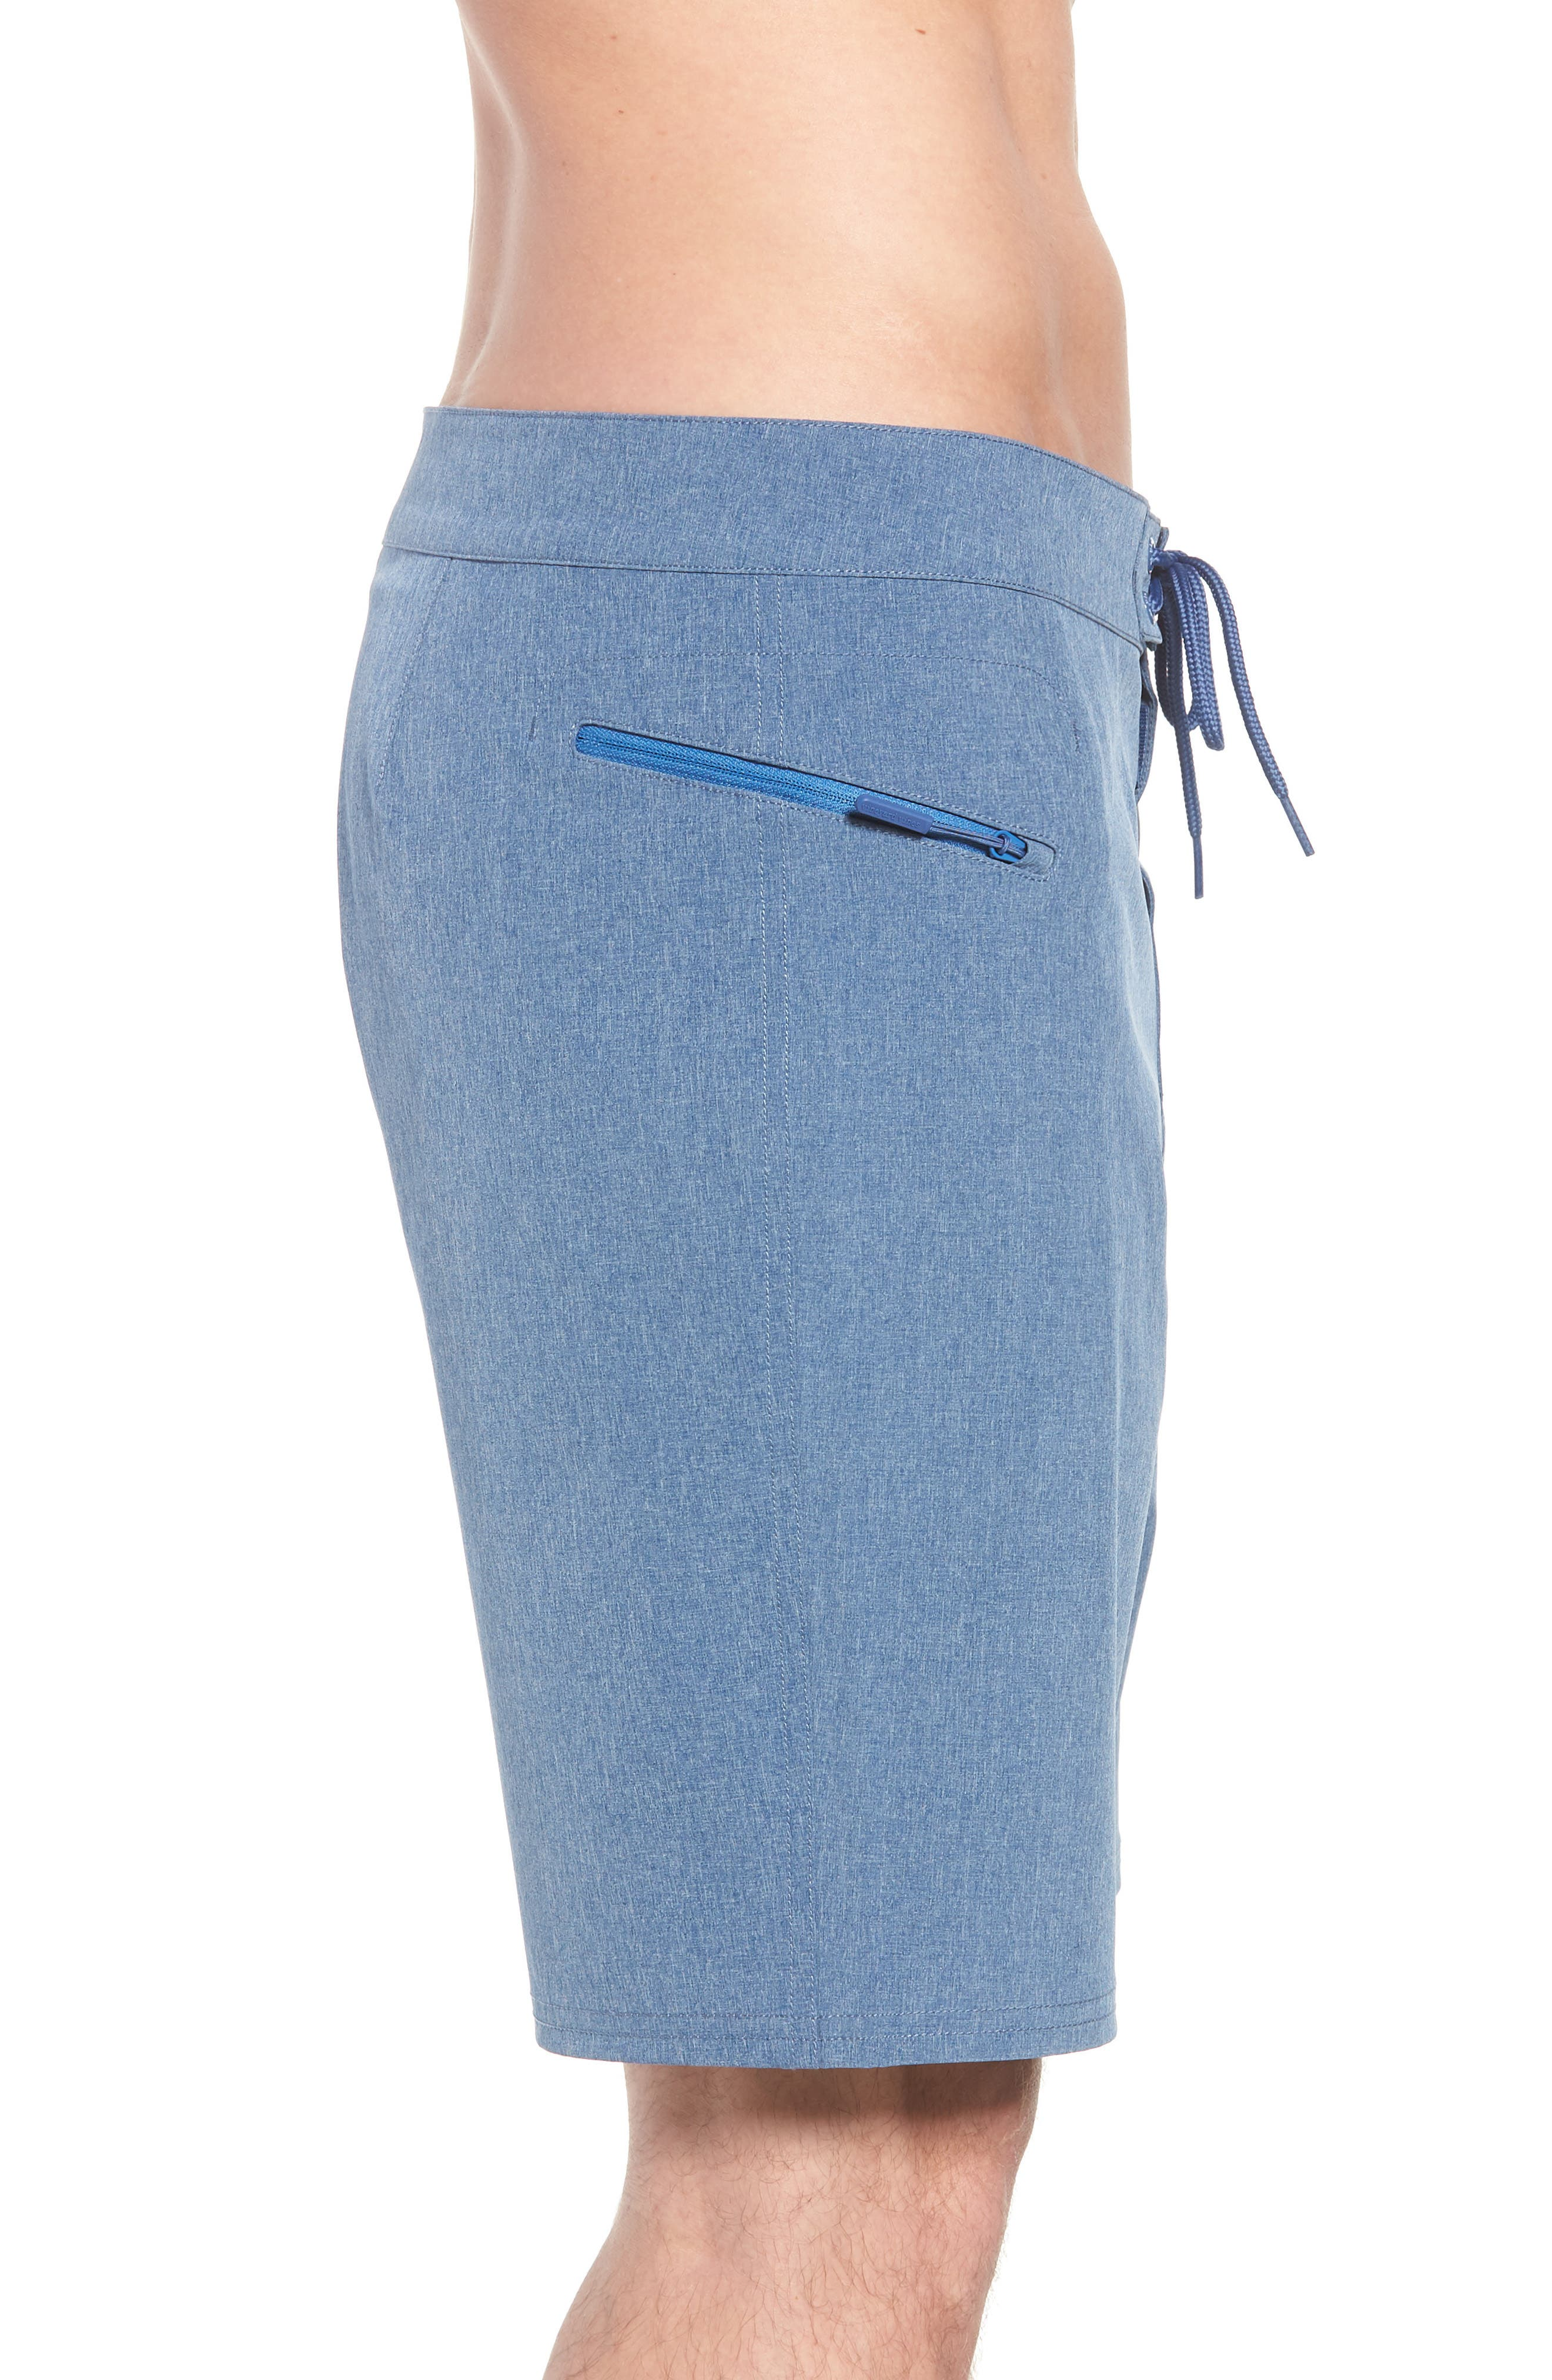 Heather Stretch Board Shorts,                             Alternate thumbnail 4, color,                             461